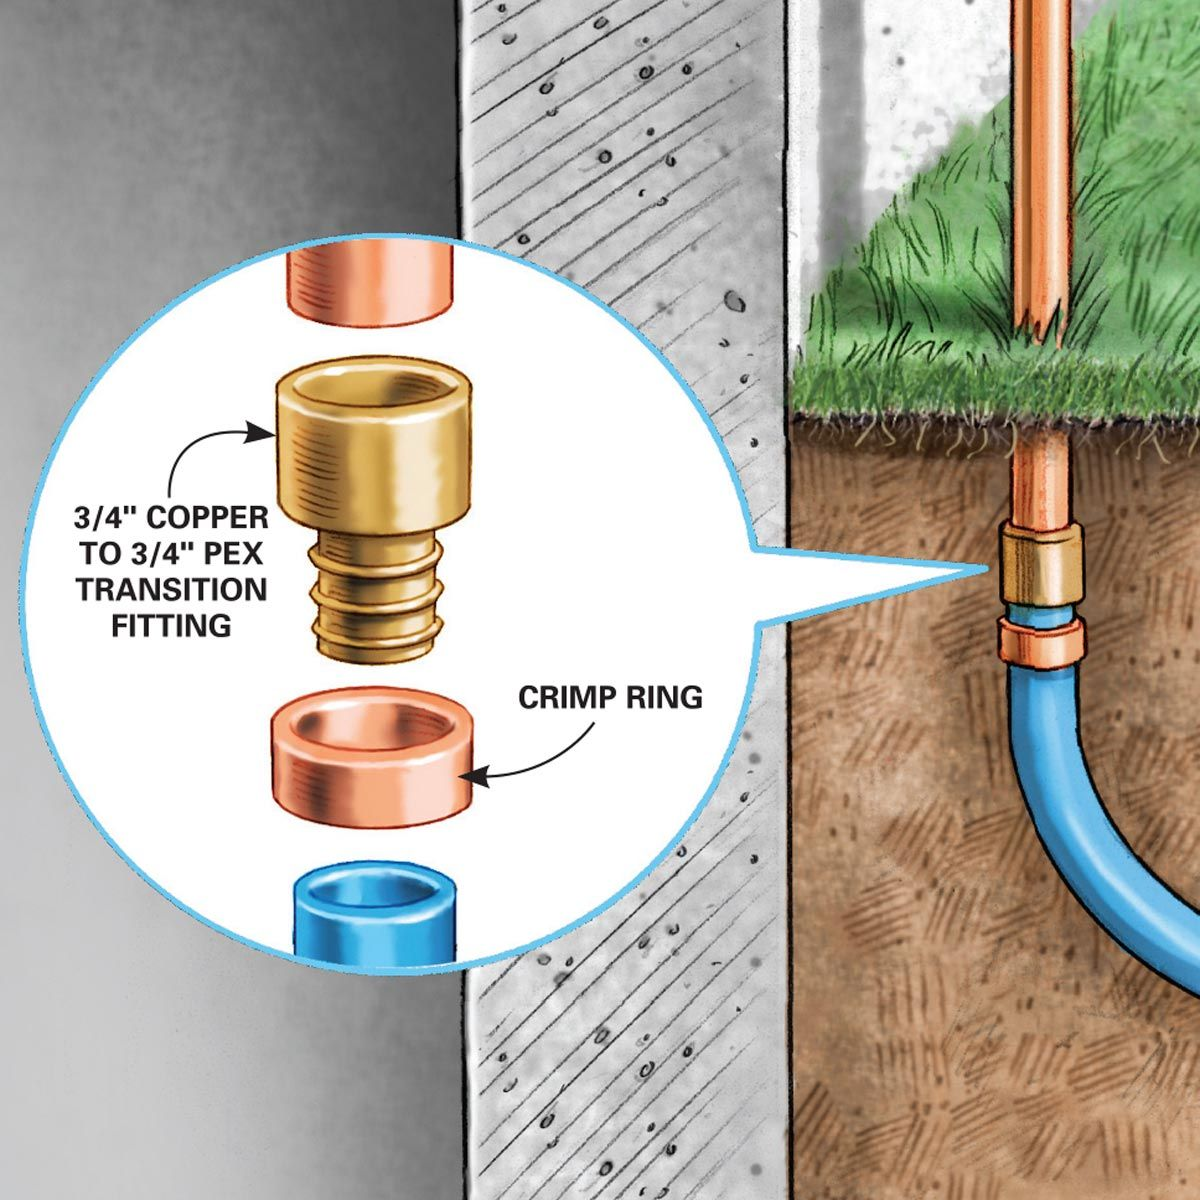 How To Install An Outdoor Faucet Pex Tubing Faucet Pvc Fence